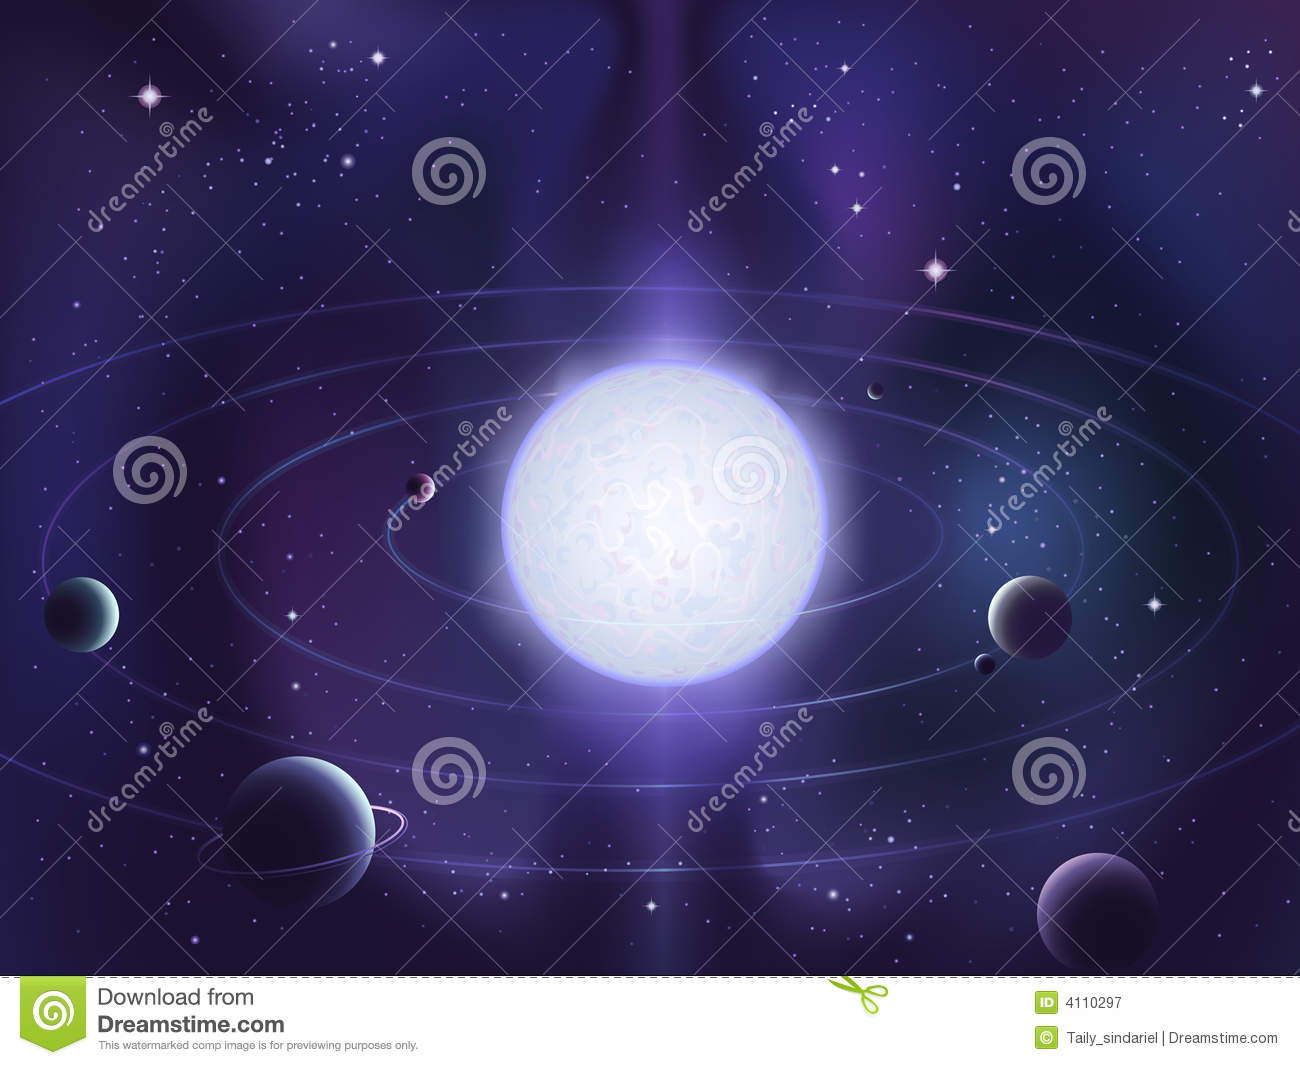 planets around a star - photo #4